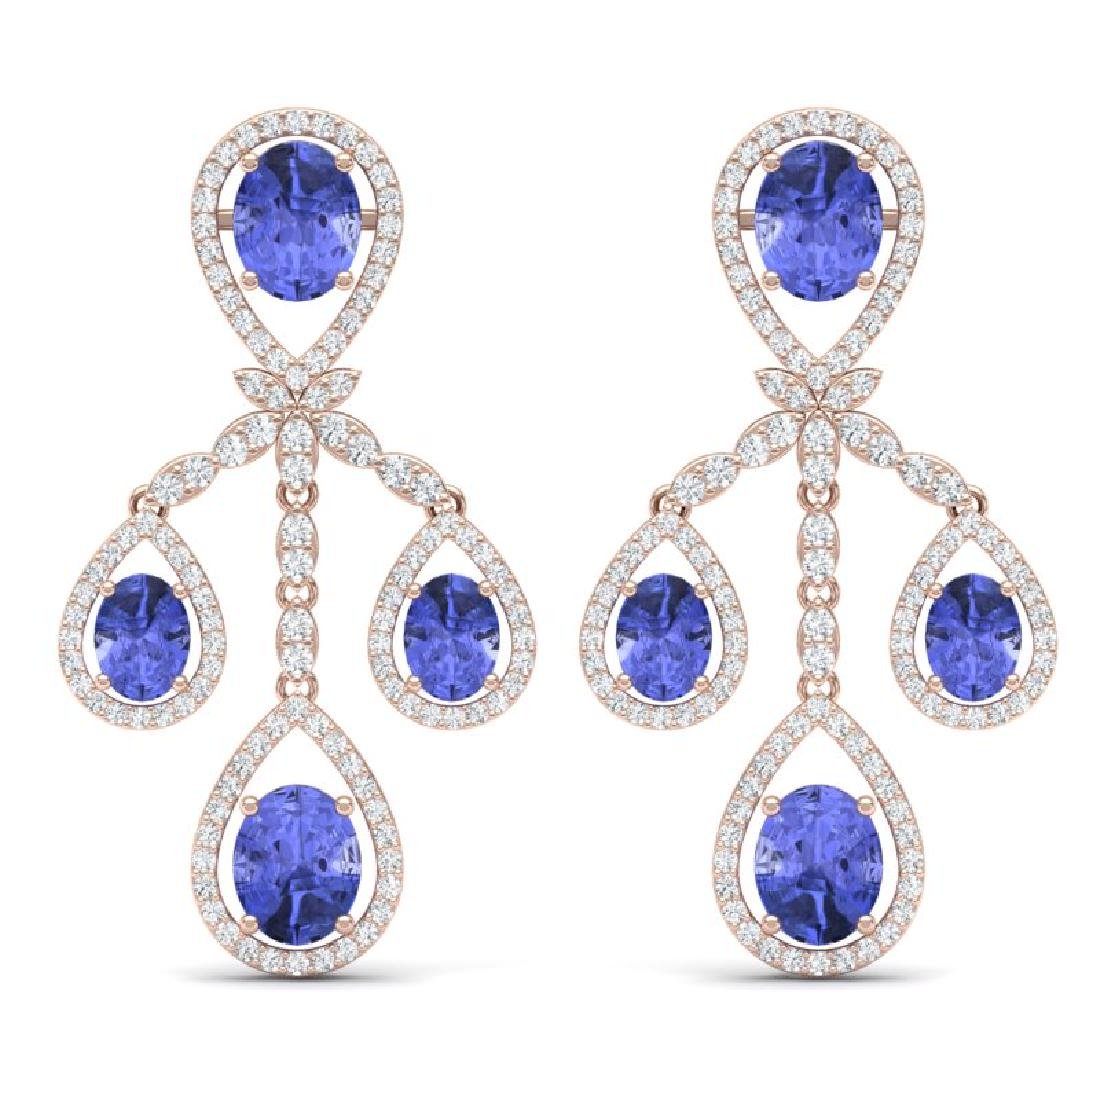 24.89 CTW Royalty Tanzanite & VS Diamond Earrings 18K